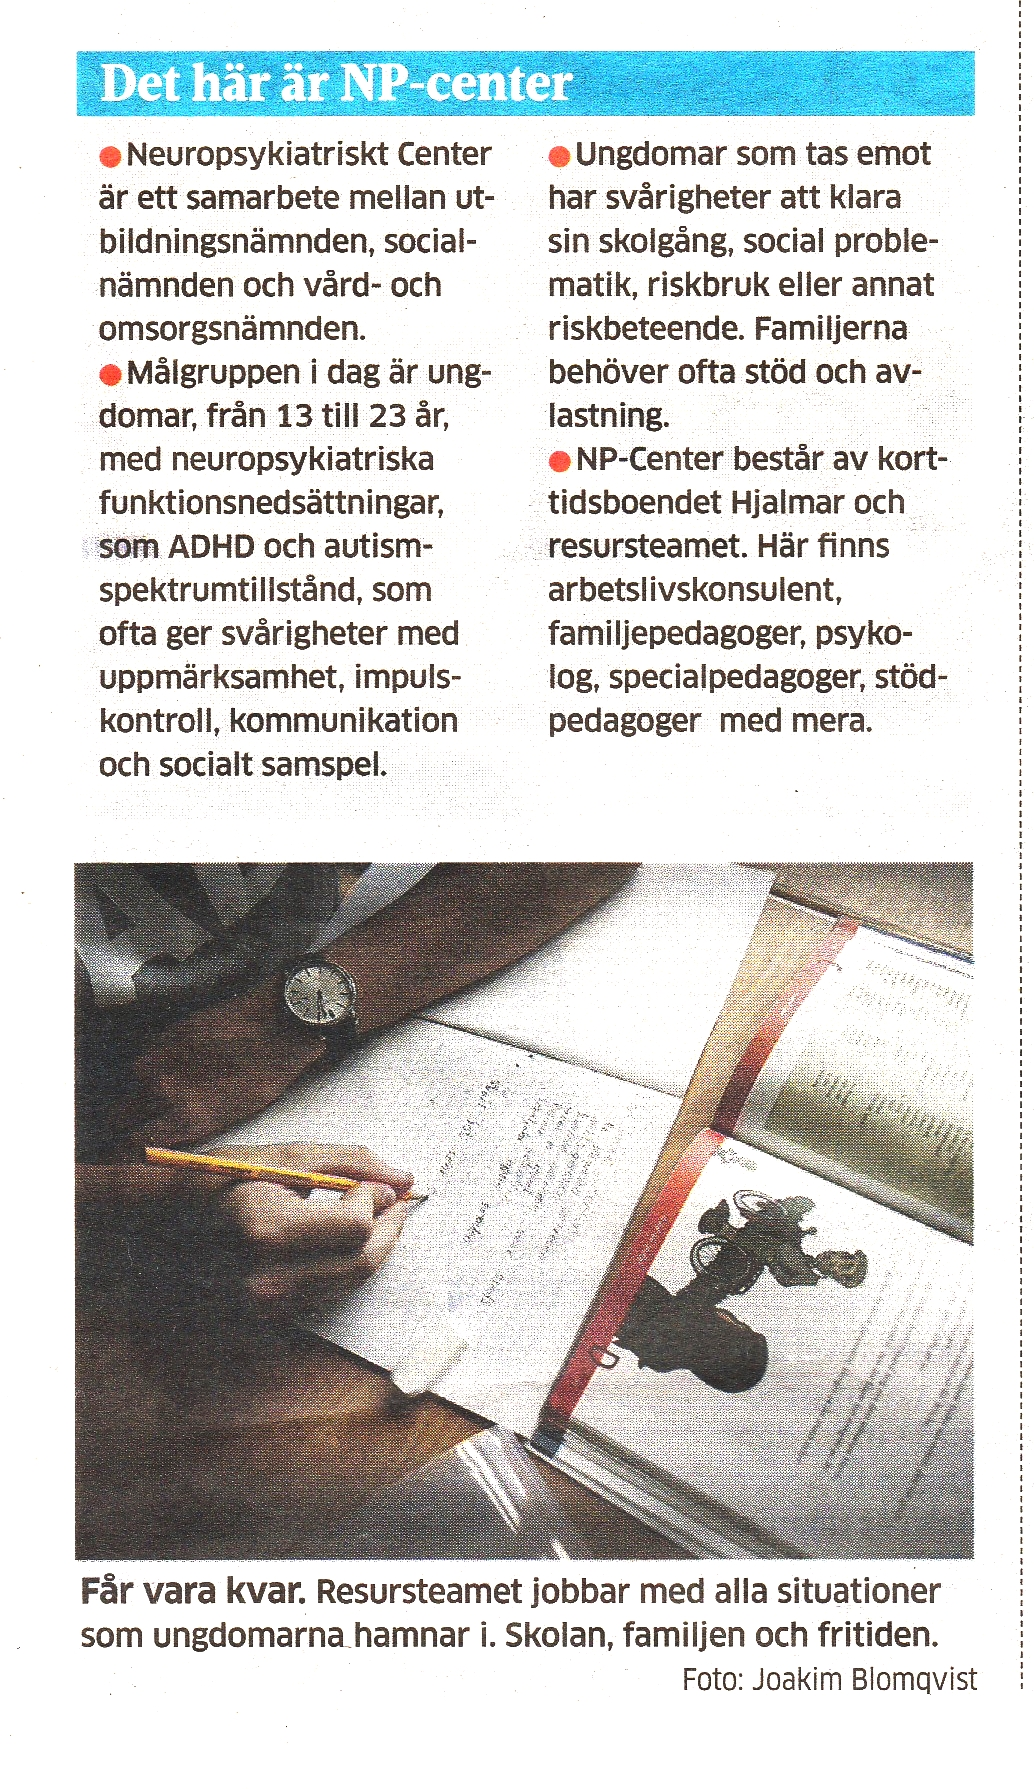 artikel-np-center-nt-26-nov